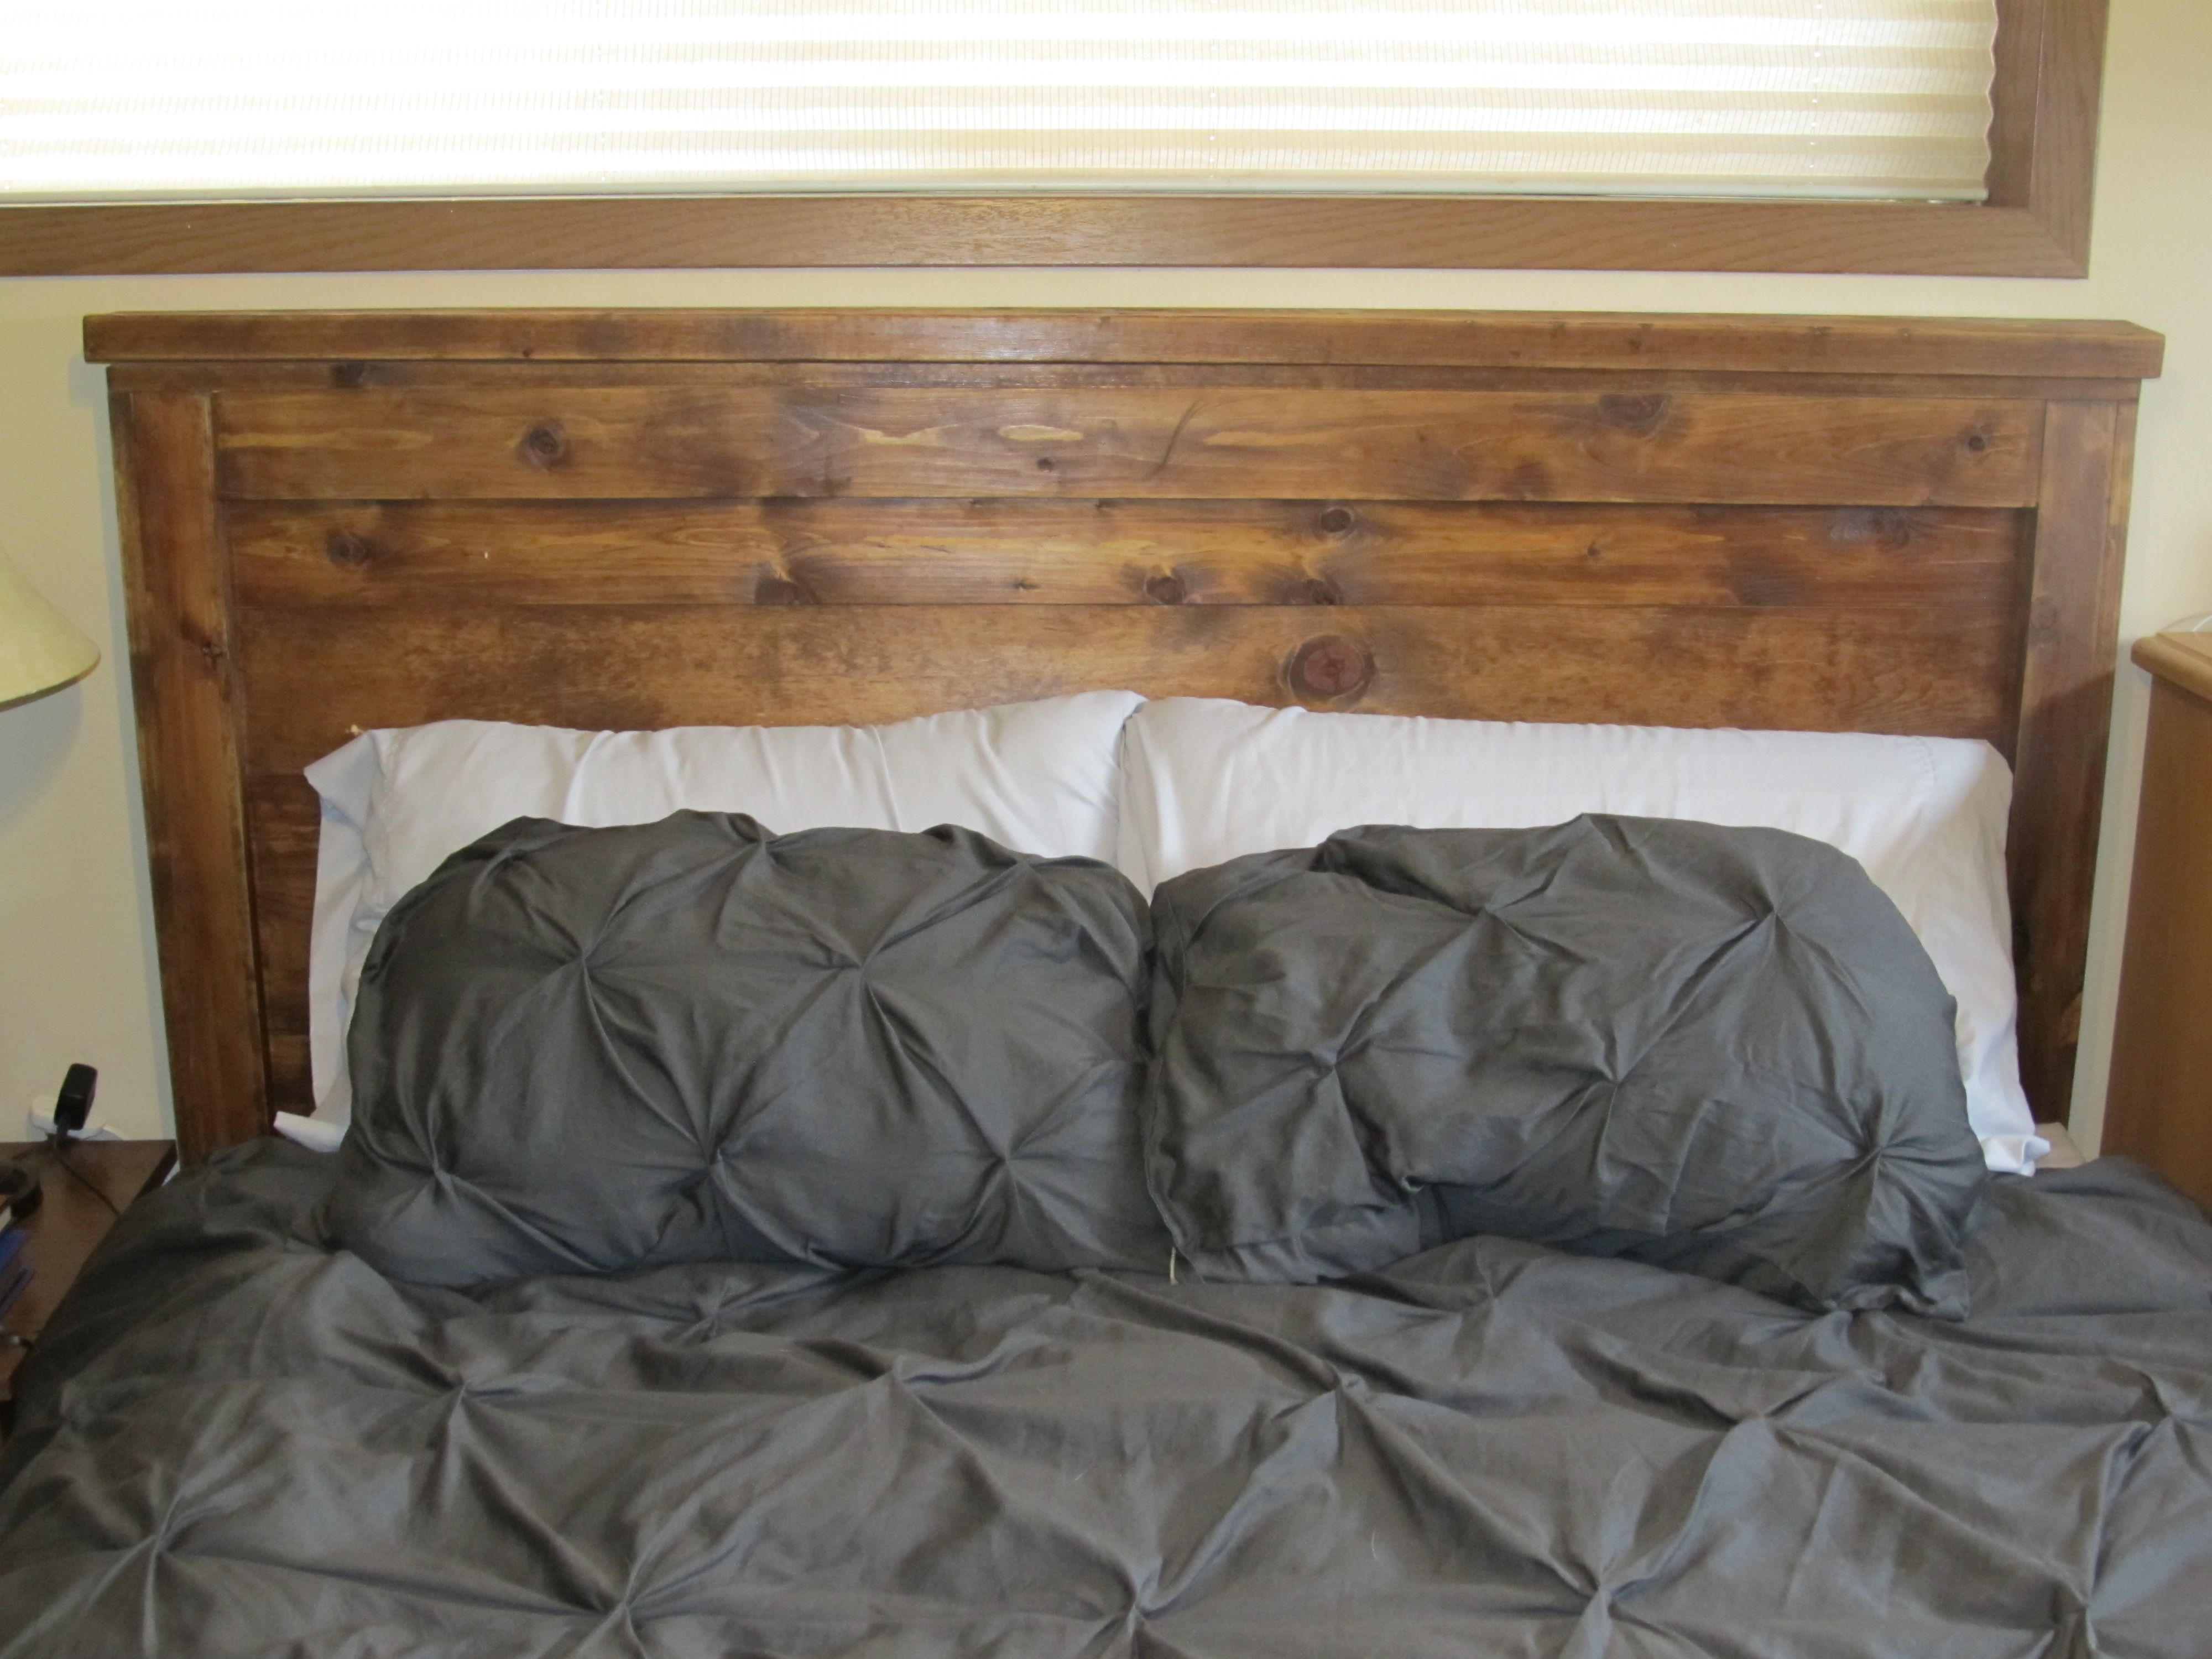 Queen Size Home Bedding Reclaimed Wood Headboard Bed Frame